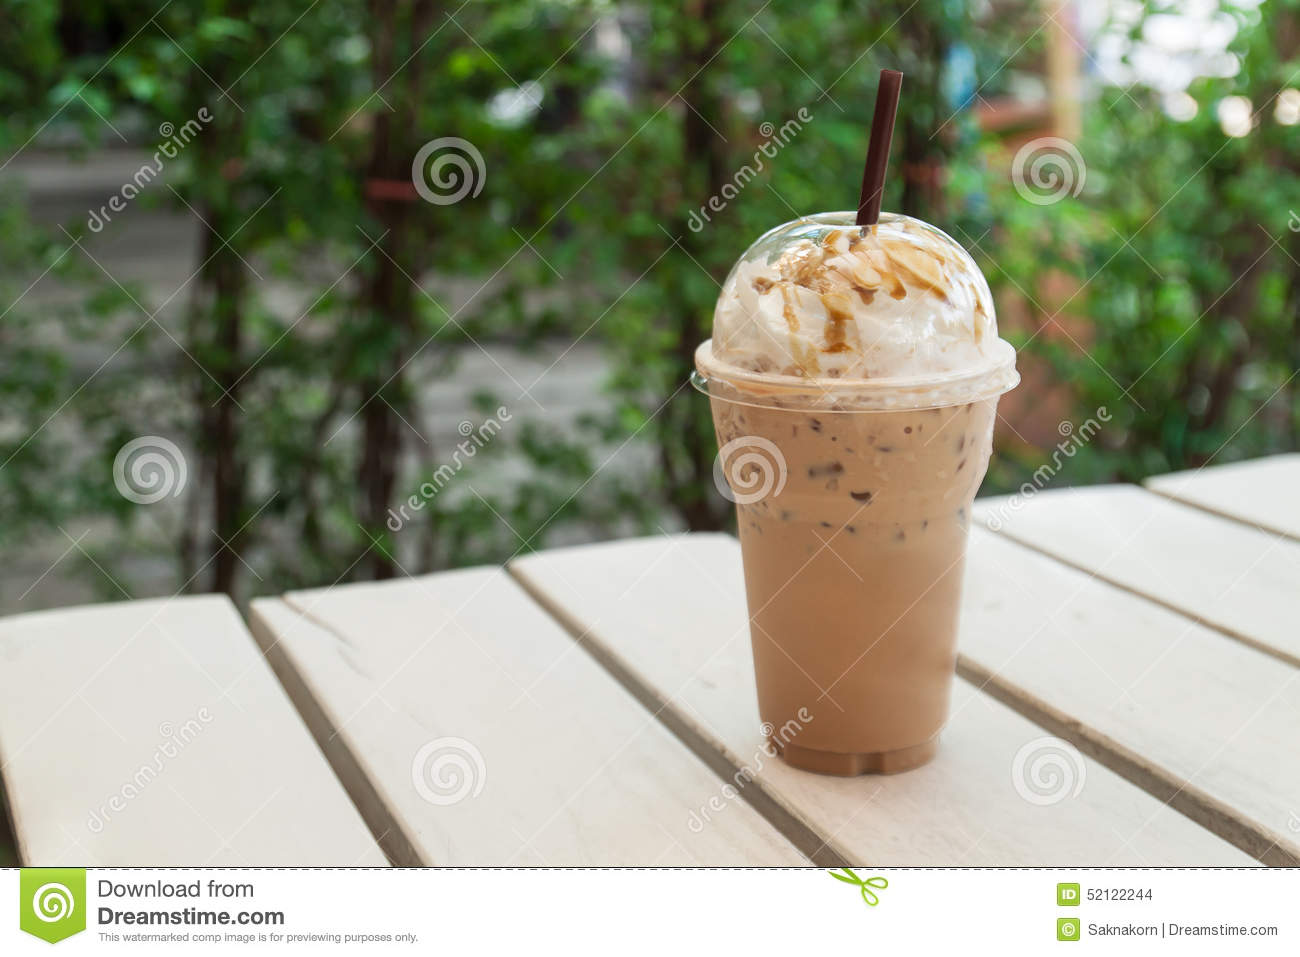 Iced Coffee In Plastic Cup Stock Photo - Image: 52122244